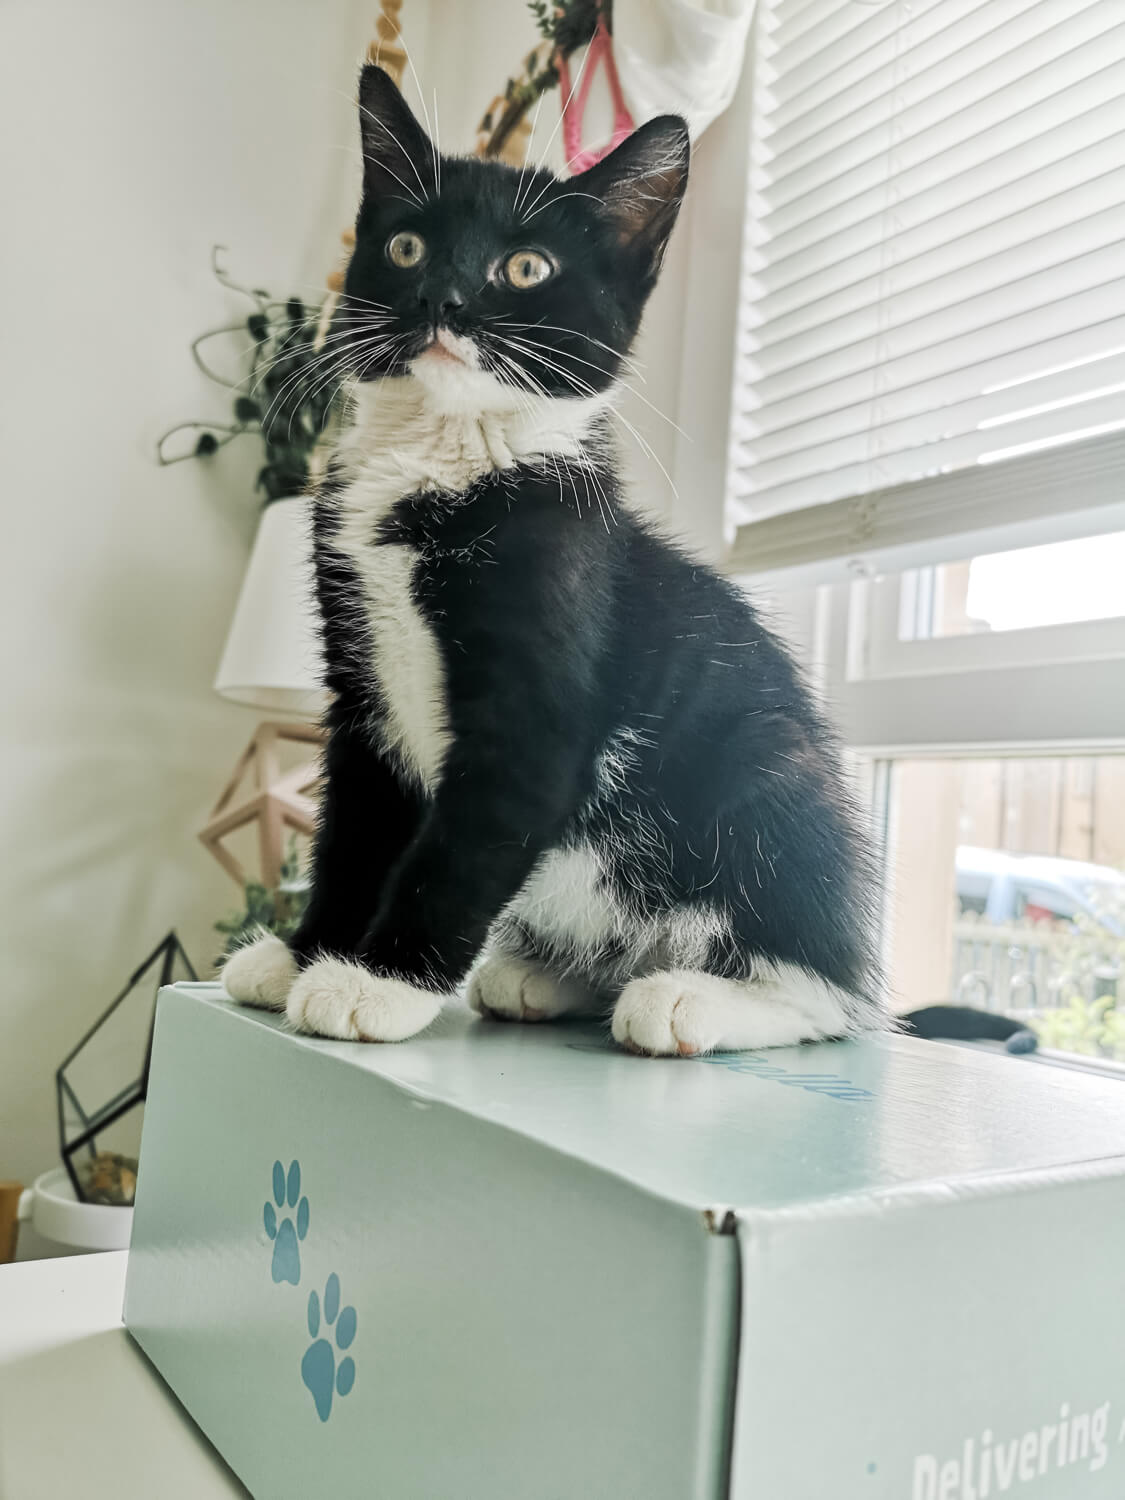 A kitten sitting upright on top of the Gus & Bella cat box.